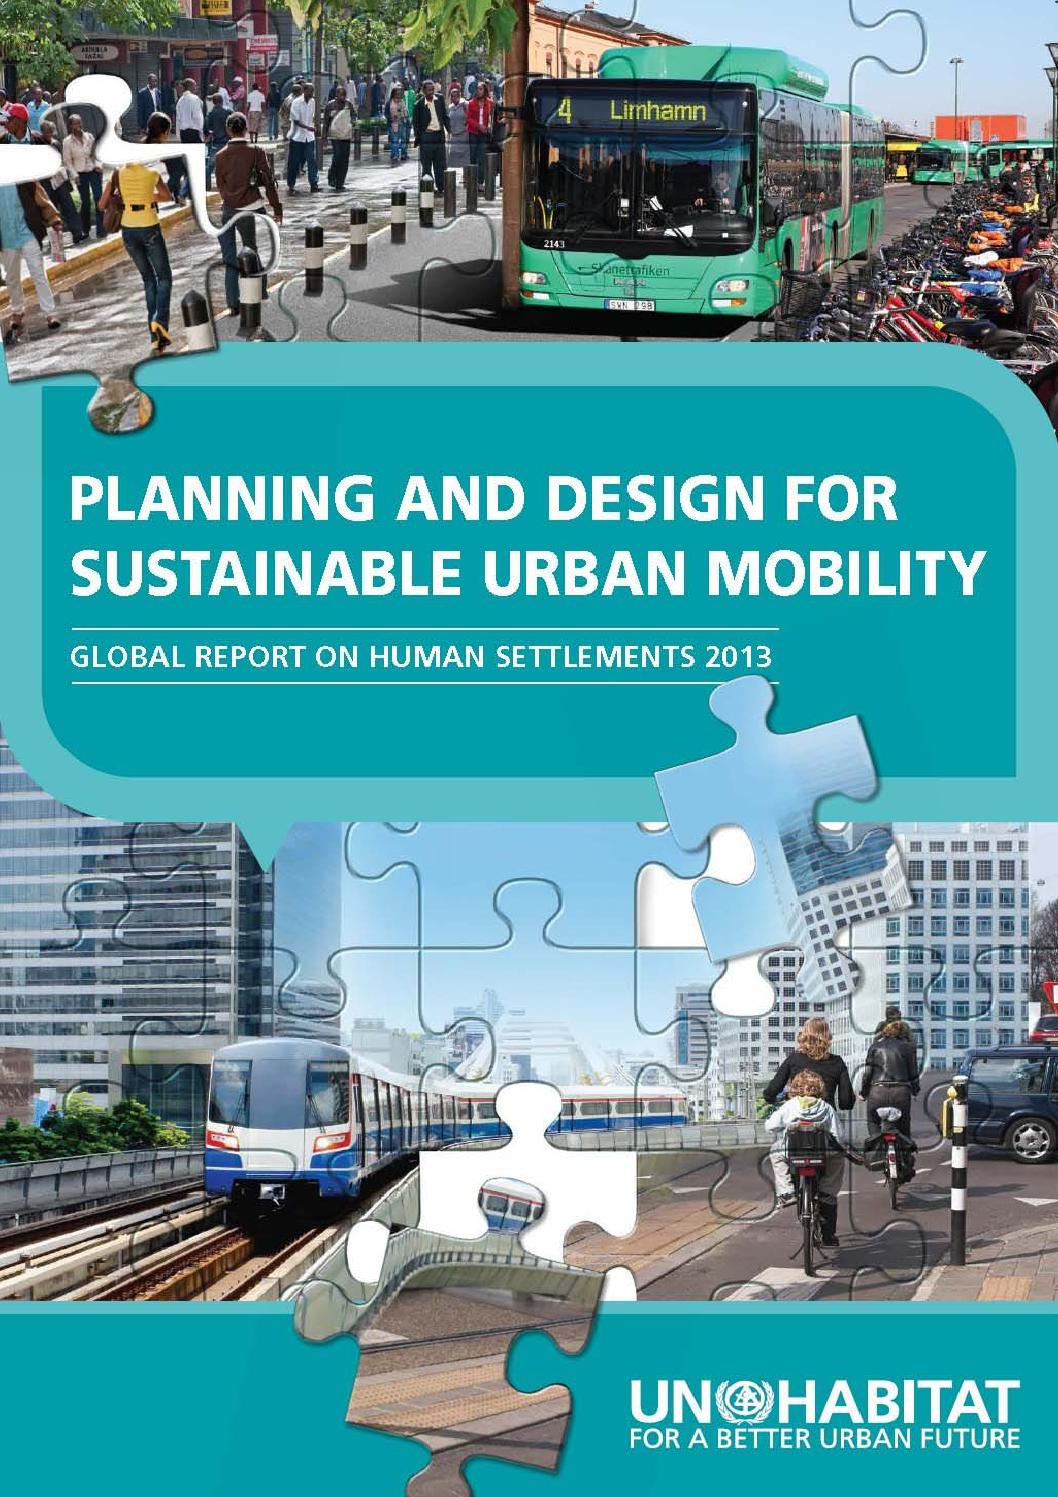 Planning and design for sustainable urban mobility by United